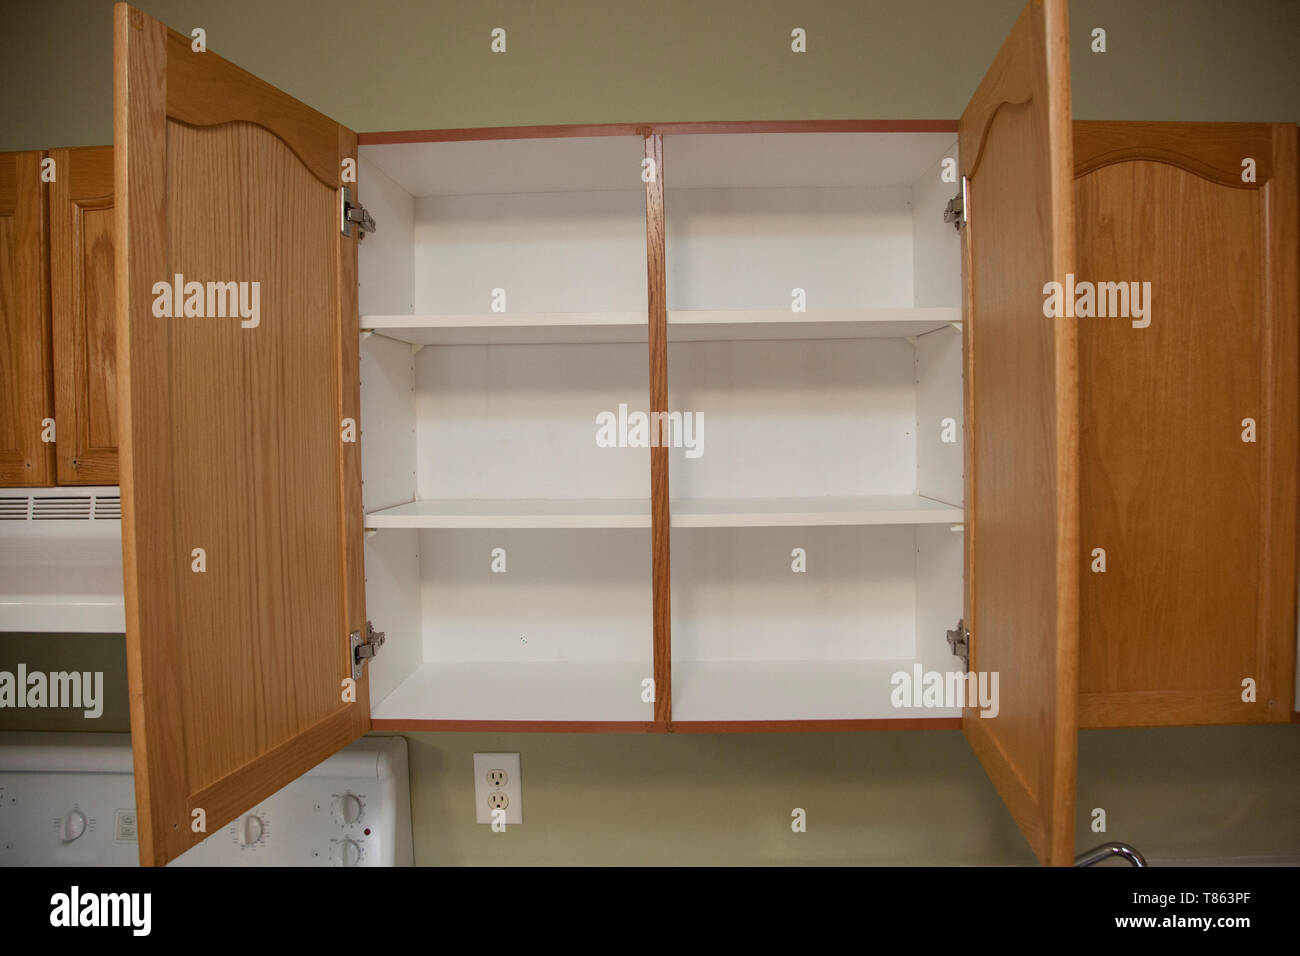 Kitchen Cupboard And Empty High Resolution Stock Photography And Images Alamy